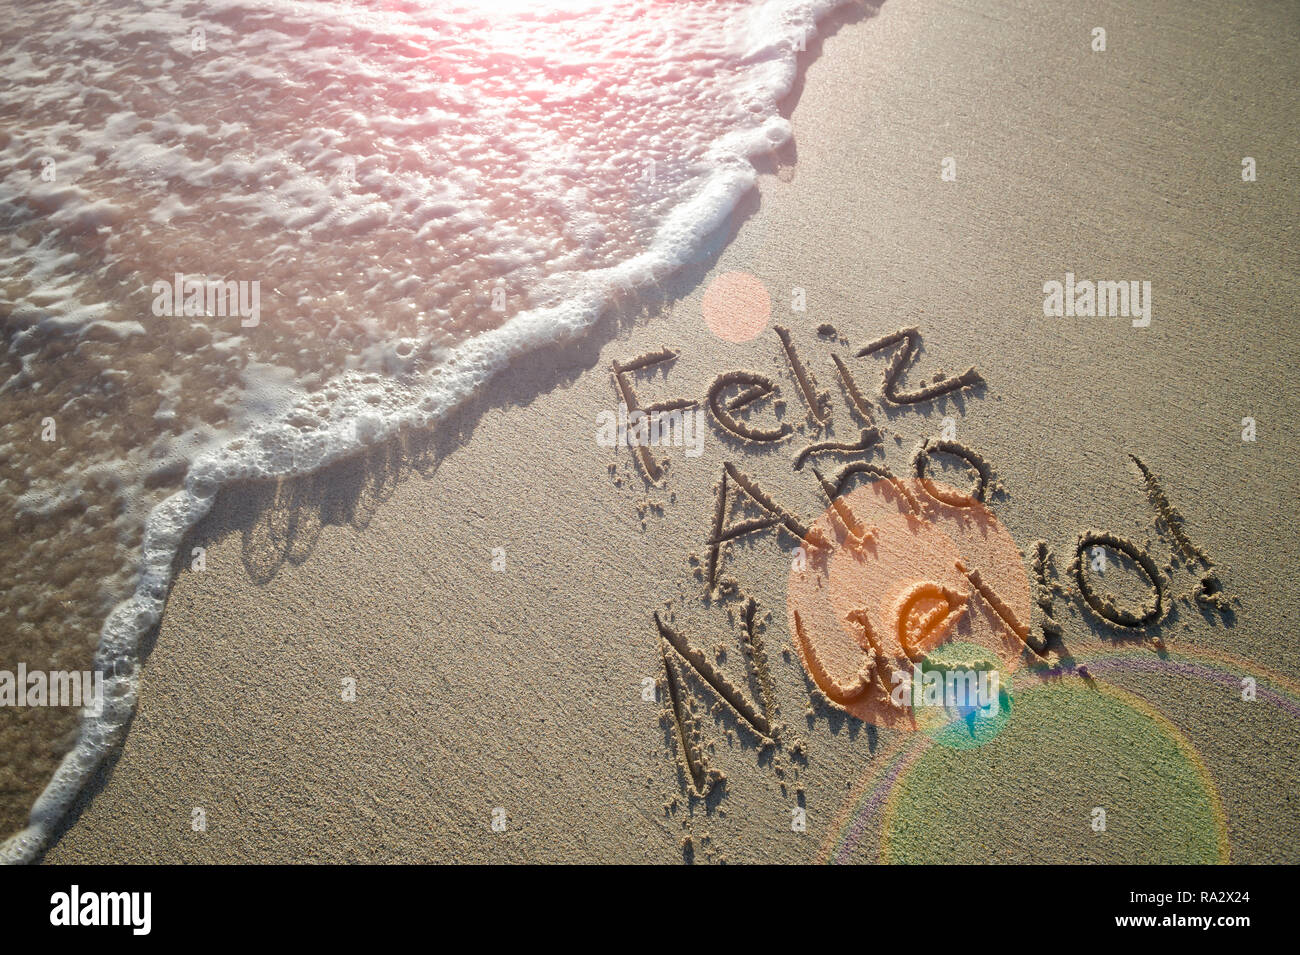 Spanish Happy New Year message (Feliz Año Nuevo) handwritten with textured lettering on smooth sand beach with lens flare above oncoming wave - Stock Image